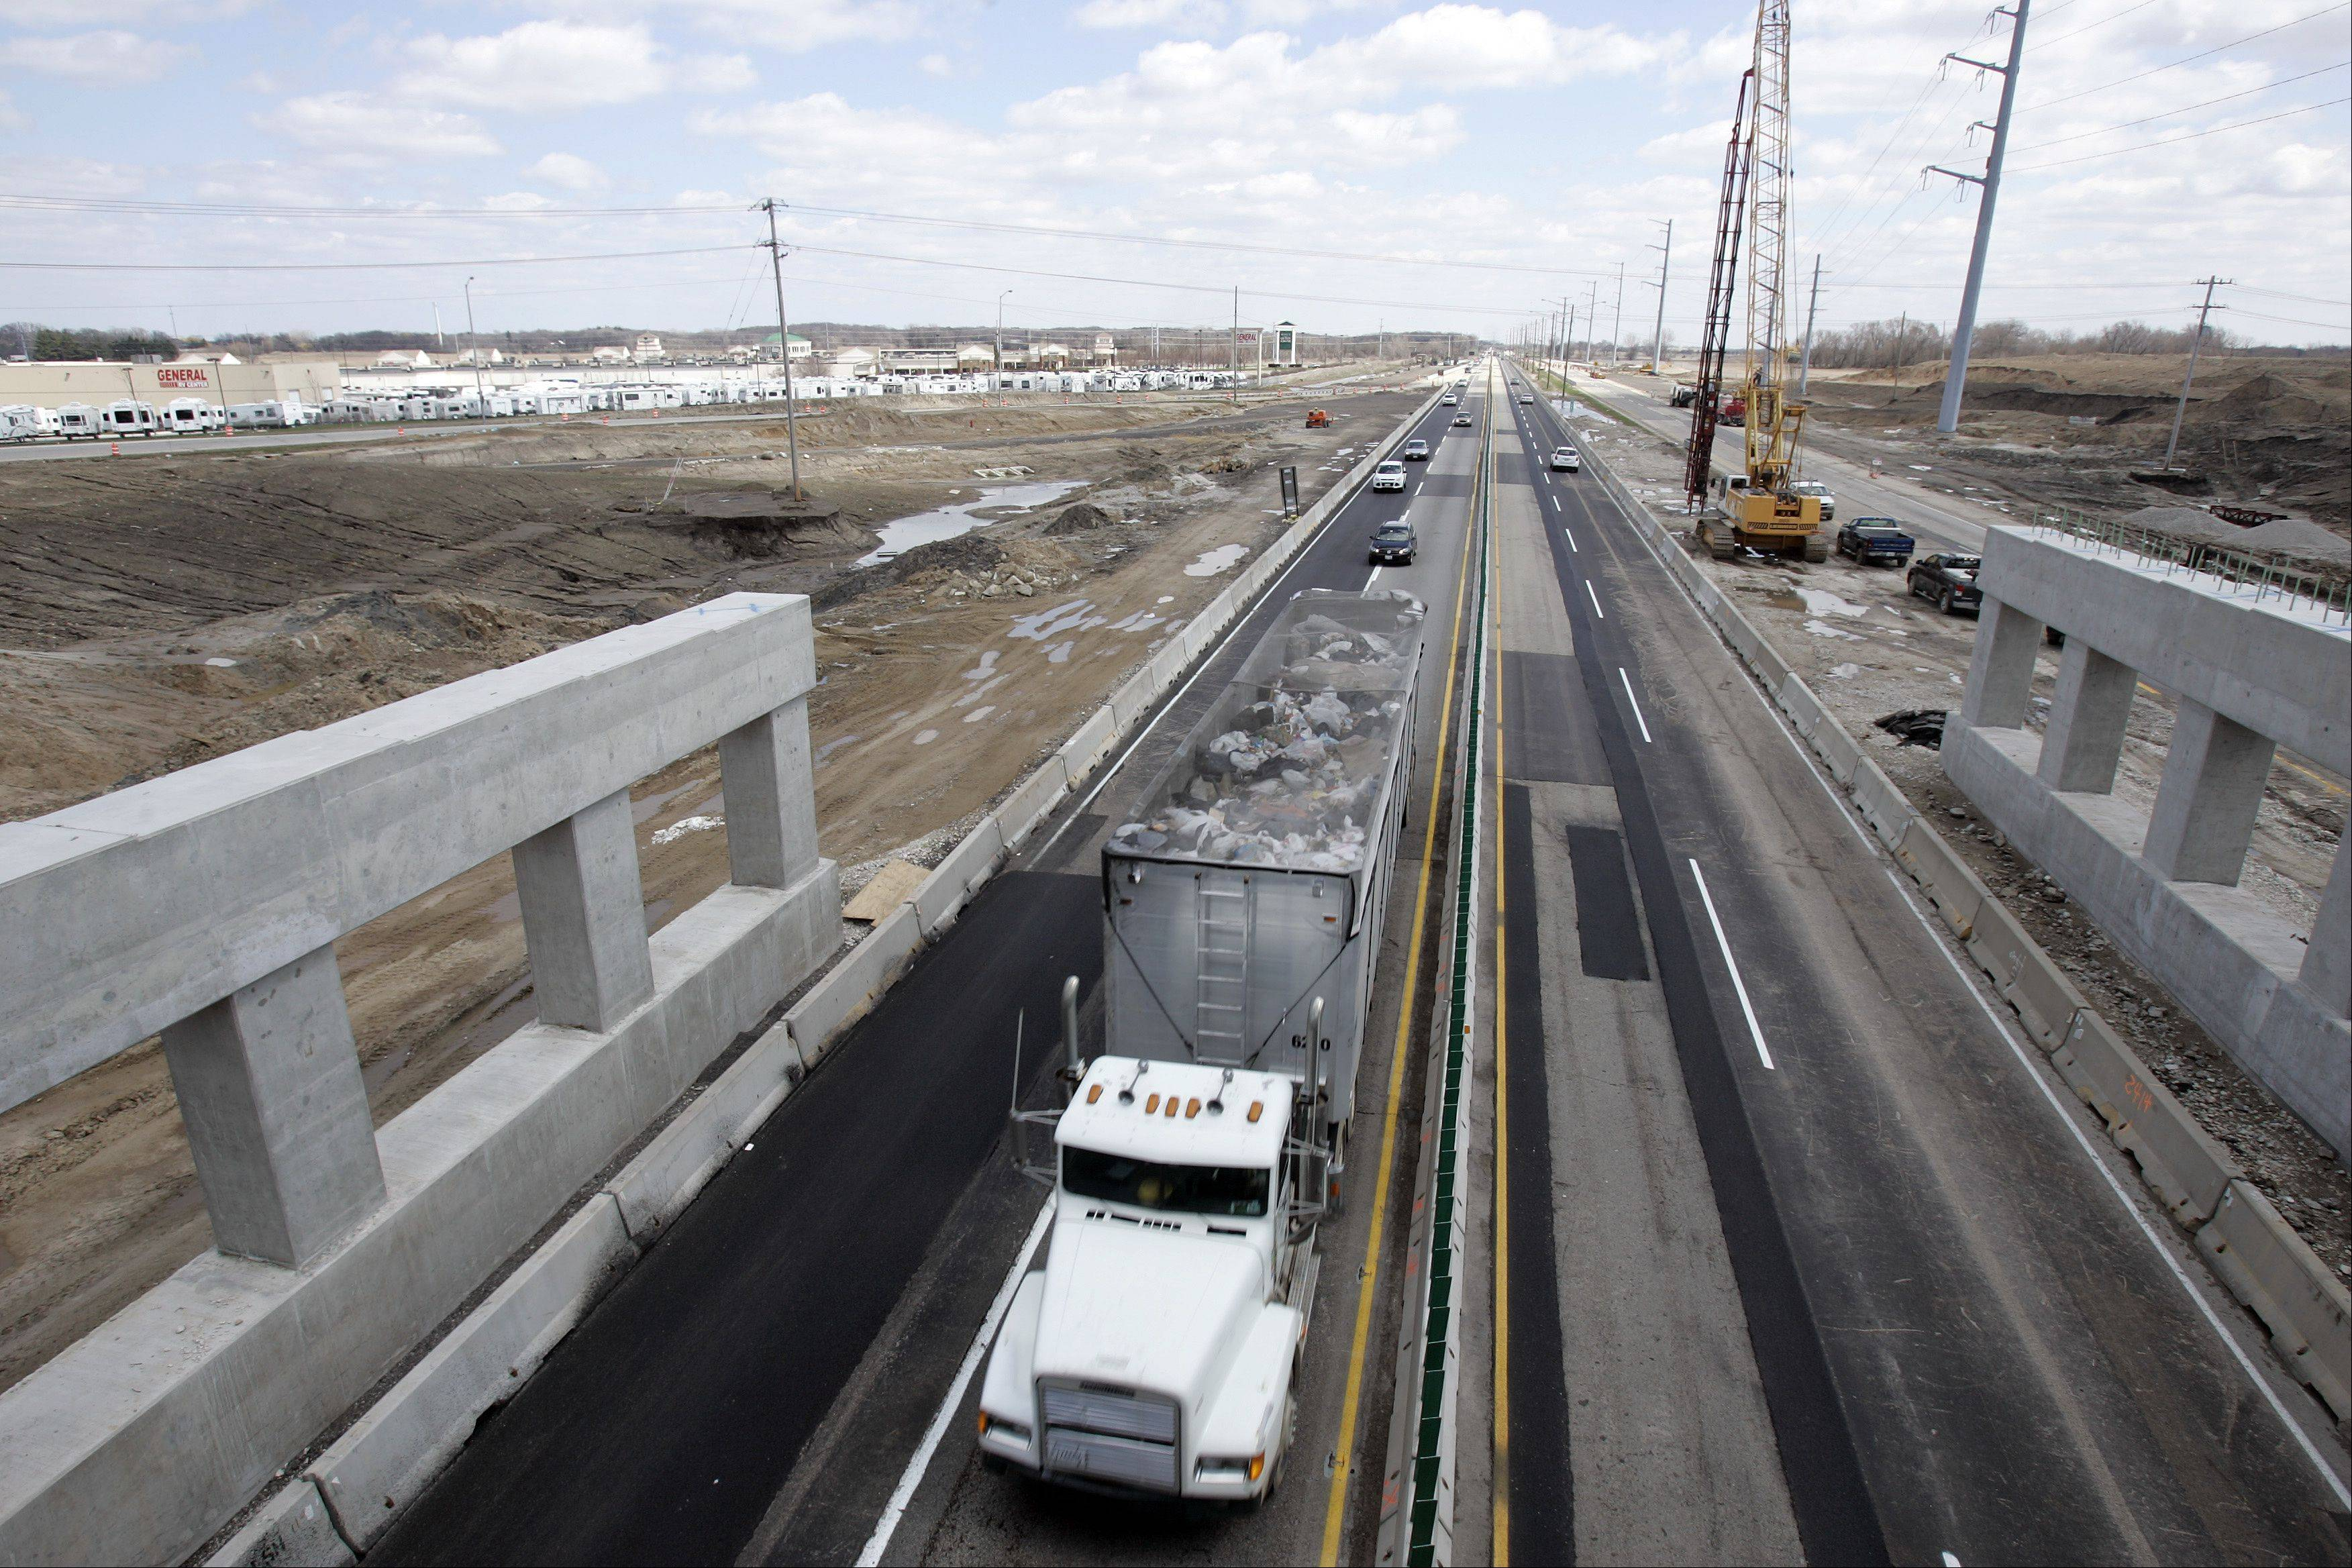 Daily Herald file photo Expect more work on I-90 in 2014 as the Illinois tollway revs up a 15-year construction program.